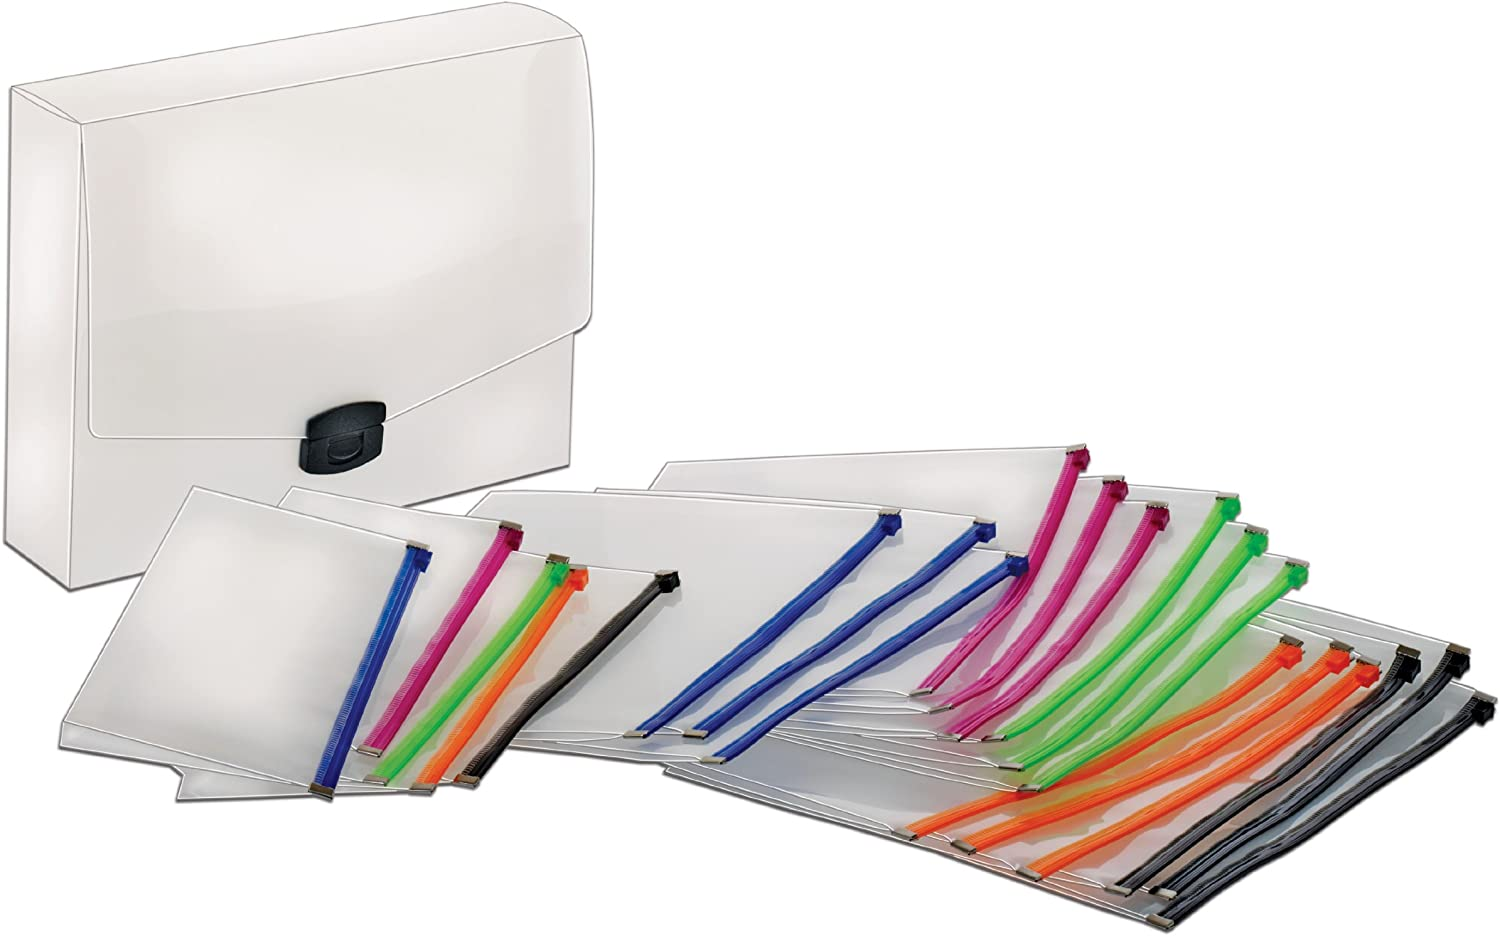 Globe-Weis/Pendaflex Poly Zip Files, 15 Letter Size, 5 Check Size, Assorted Colors (84200)